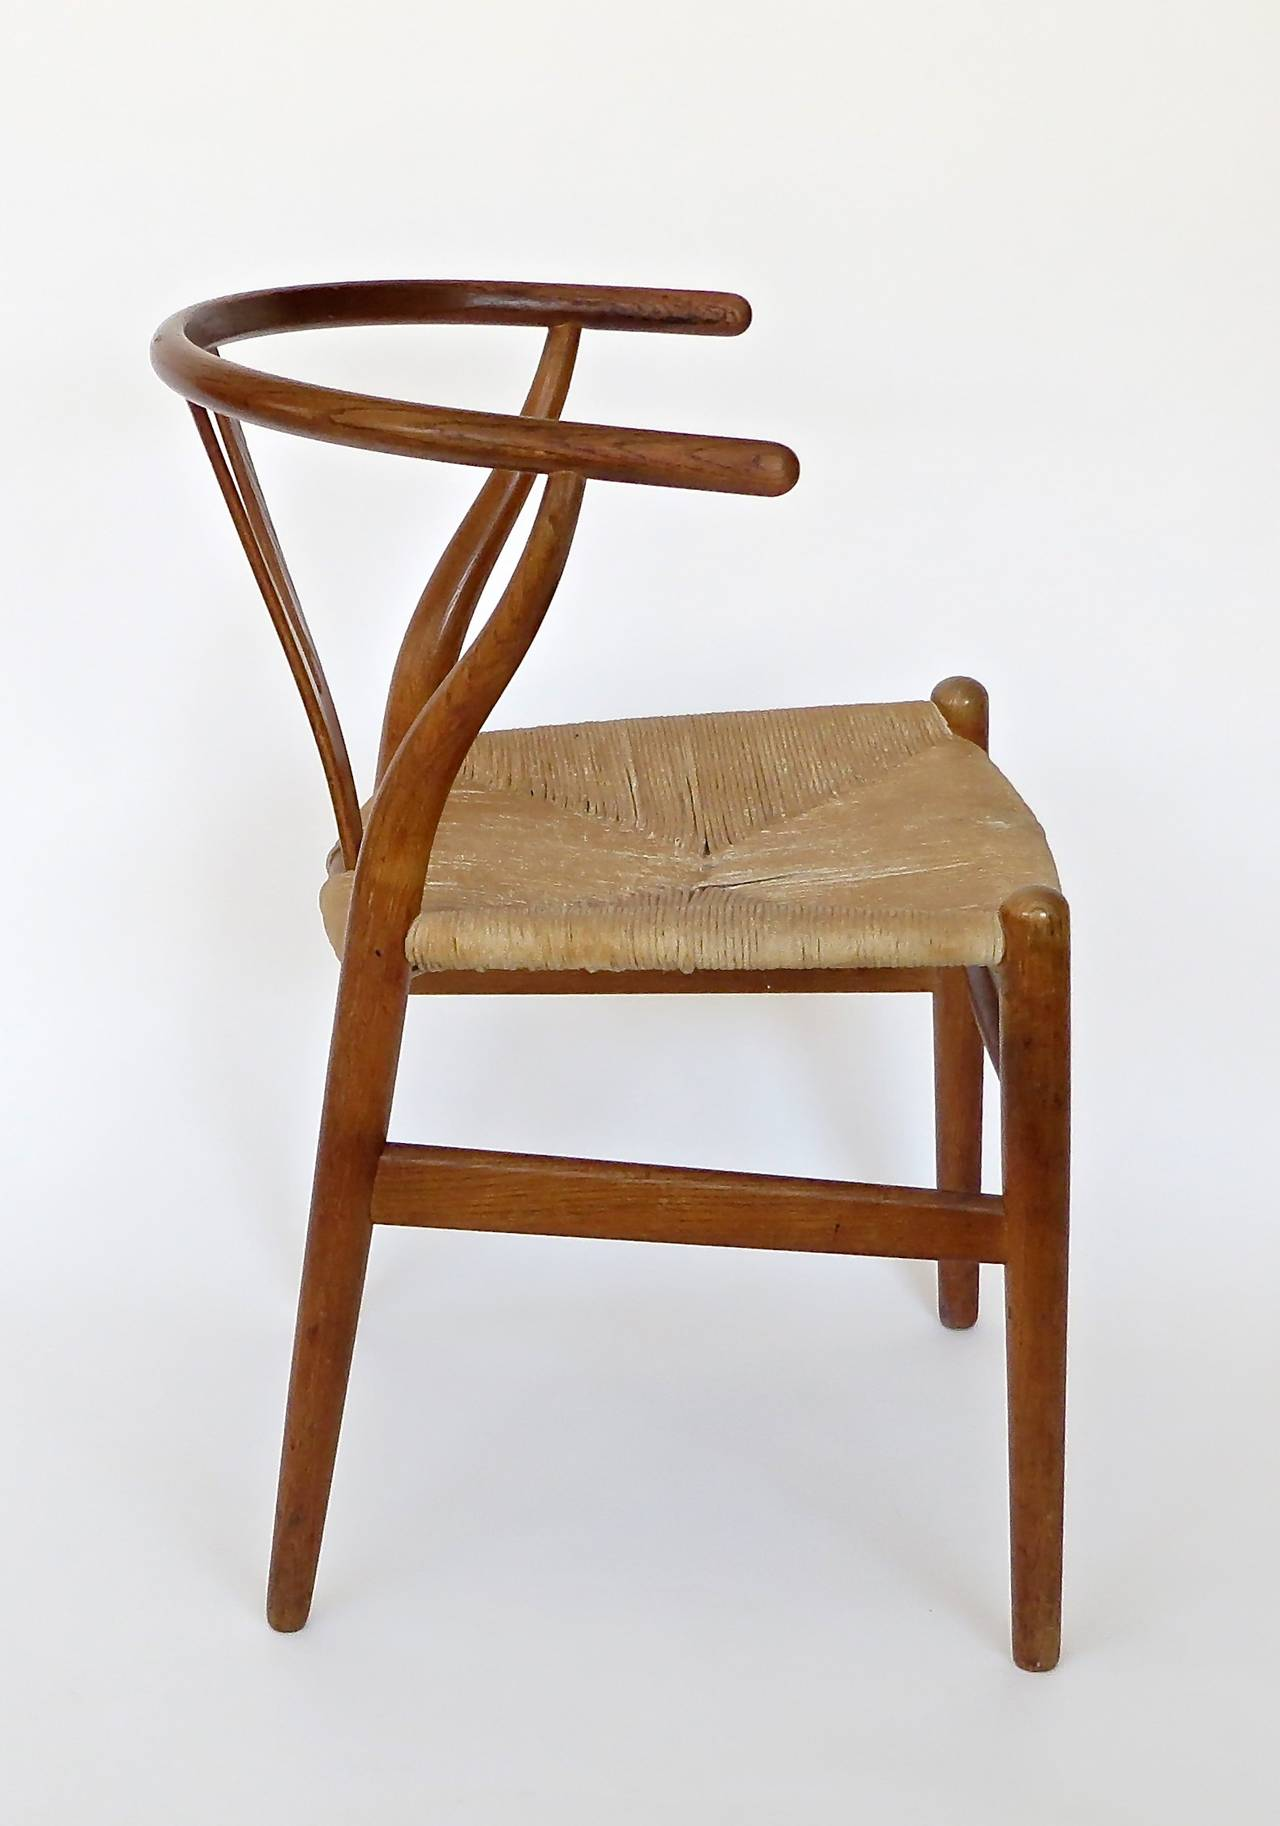 this danish ch 24 wishbone chair by hans wegner is no longer available